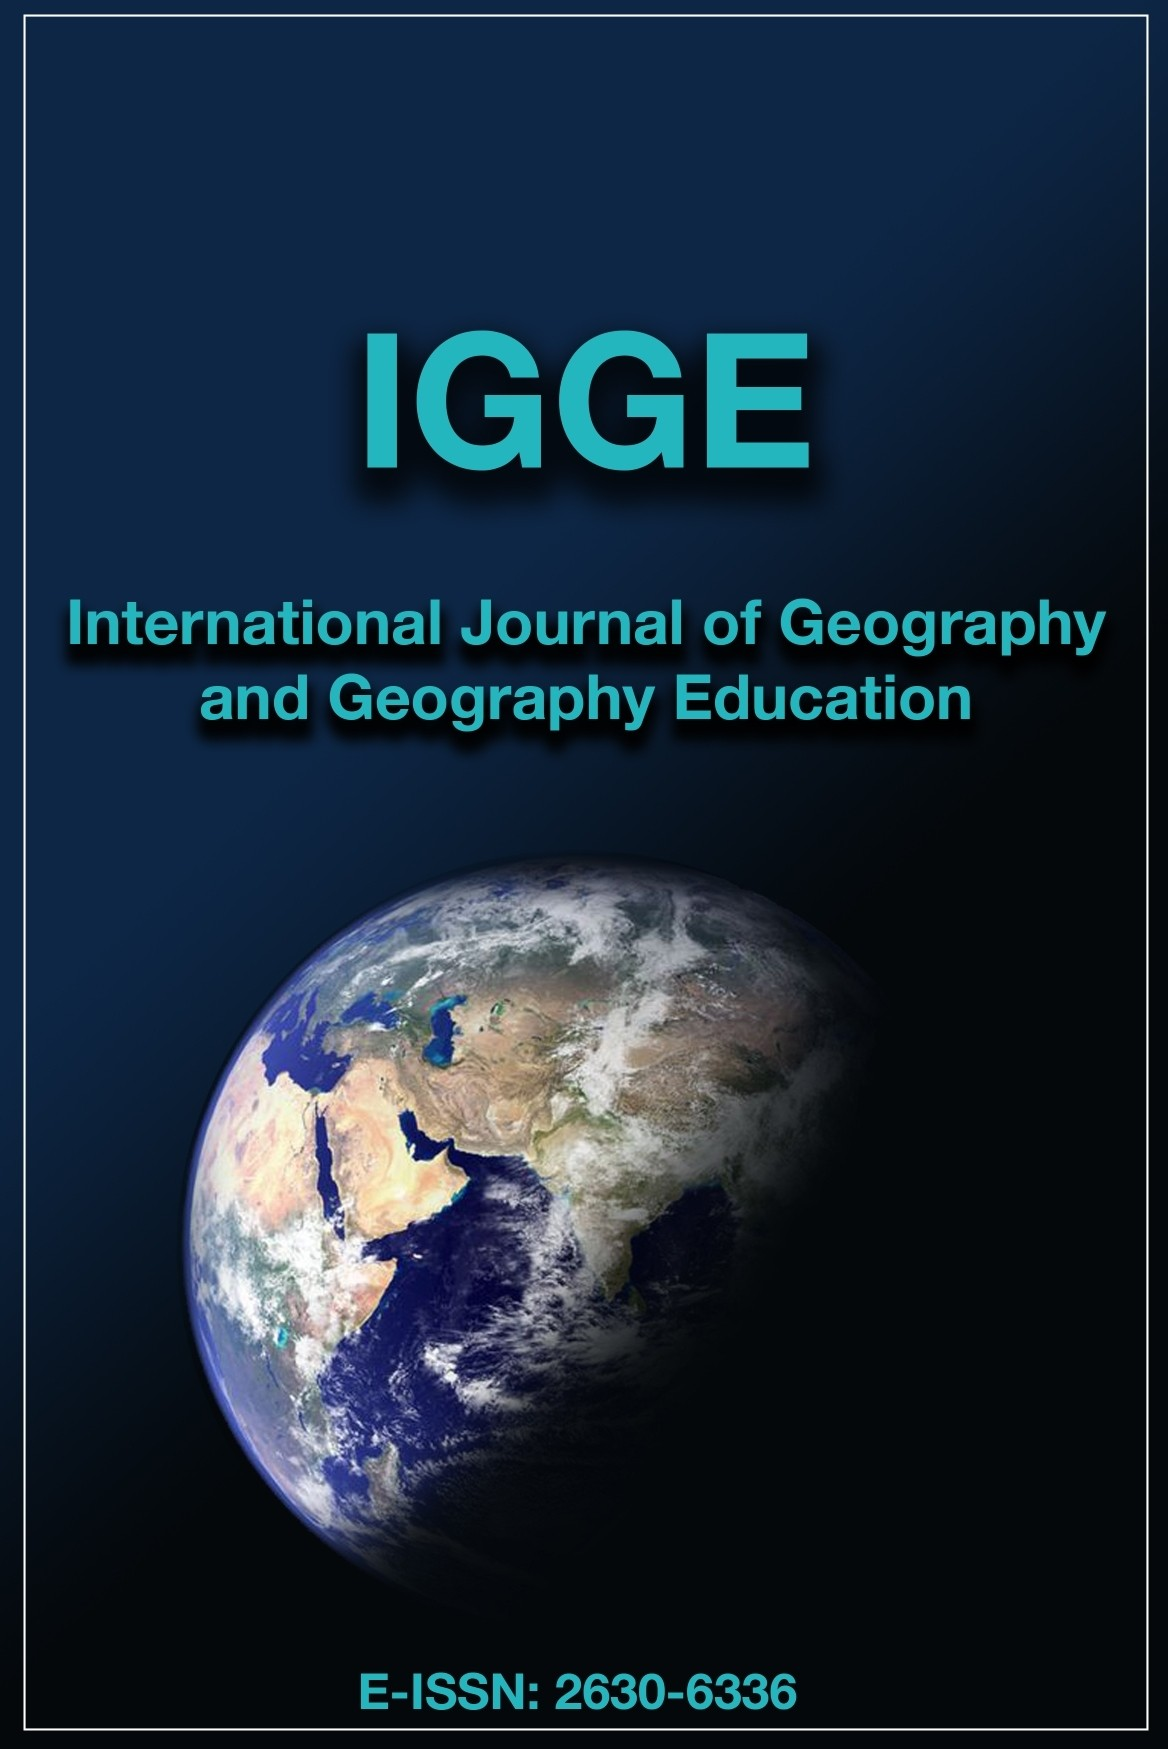 International Journal of Geography and Geography Education